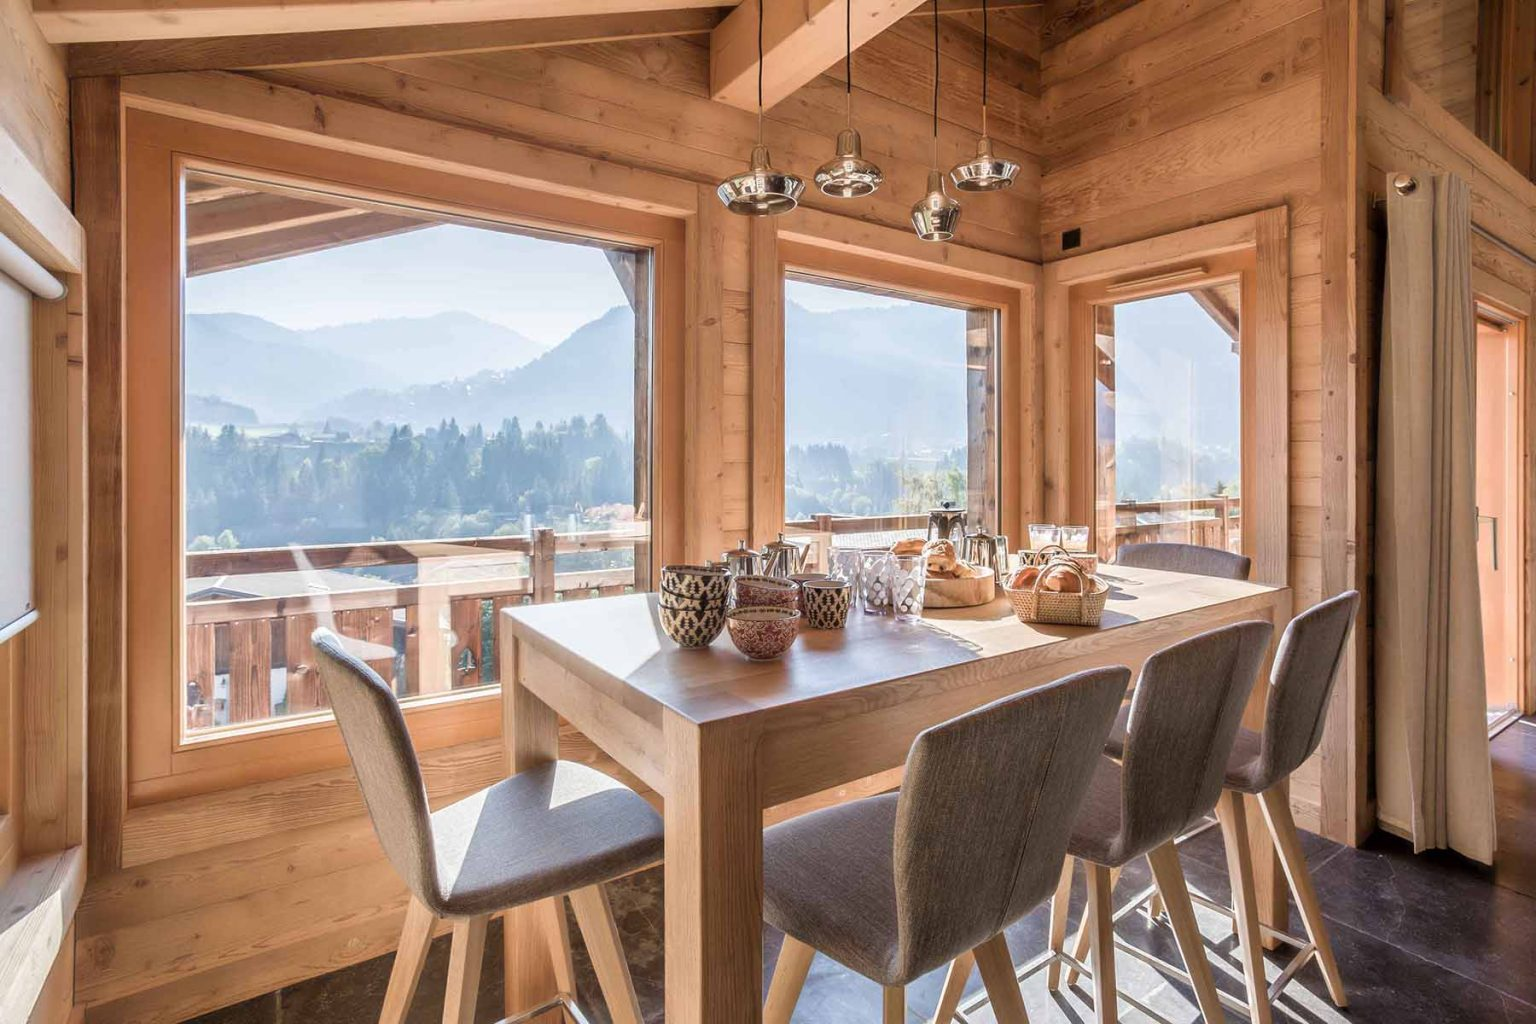 Chalet Duc Dining Room